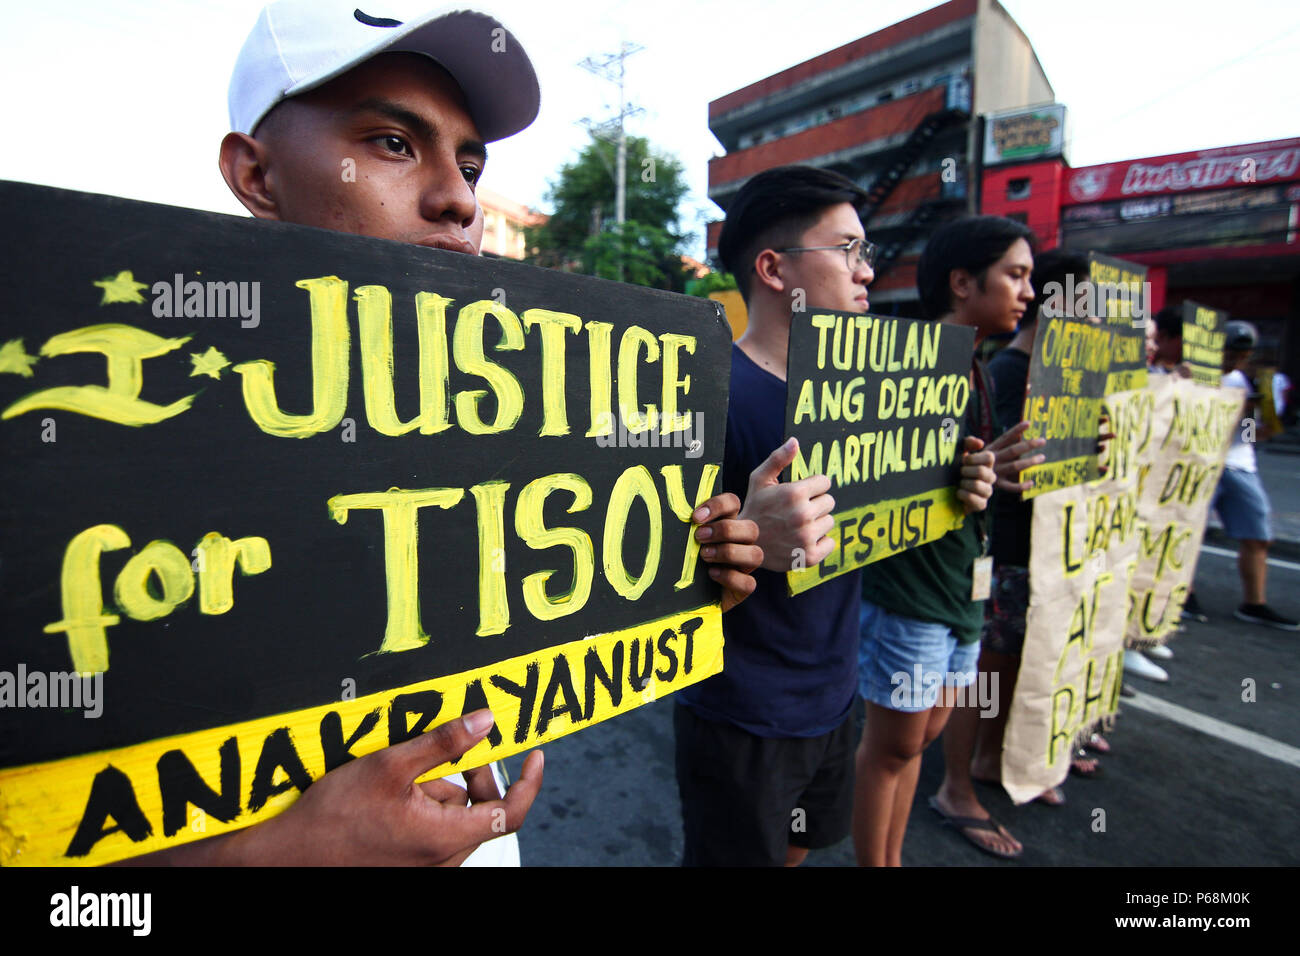 Manila, Philippines. 29th June, 2018. Students from the University of Santo Thomas staged a lightning rally near the presidential palace in Mendiola, Friday afternoon, against the recent deaths of Catholic priests. Part of the nationwide Black Friday protests, the students called for justice for Genesis ''Tisoy'' Argoncillo's death while in police detention for loitering. The group also called for the end of the Martial Law in Mindanao. Credit: J Gerard Seguia/ZUMA Wire/Alamy Live News - Stock Image